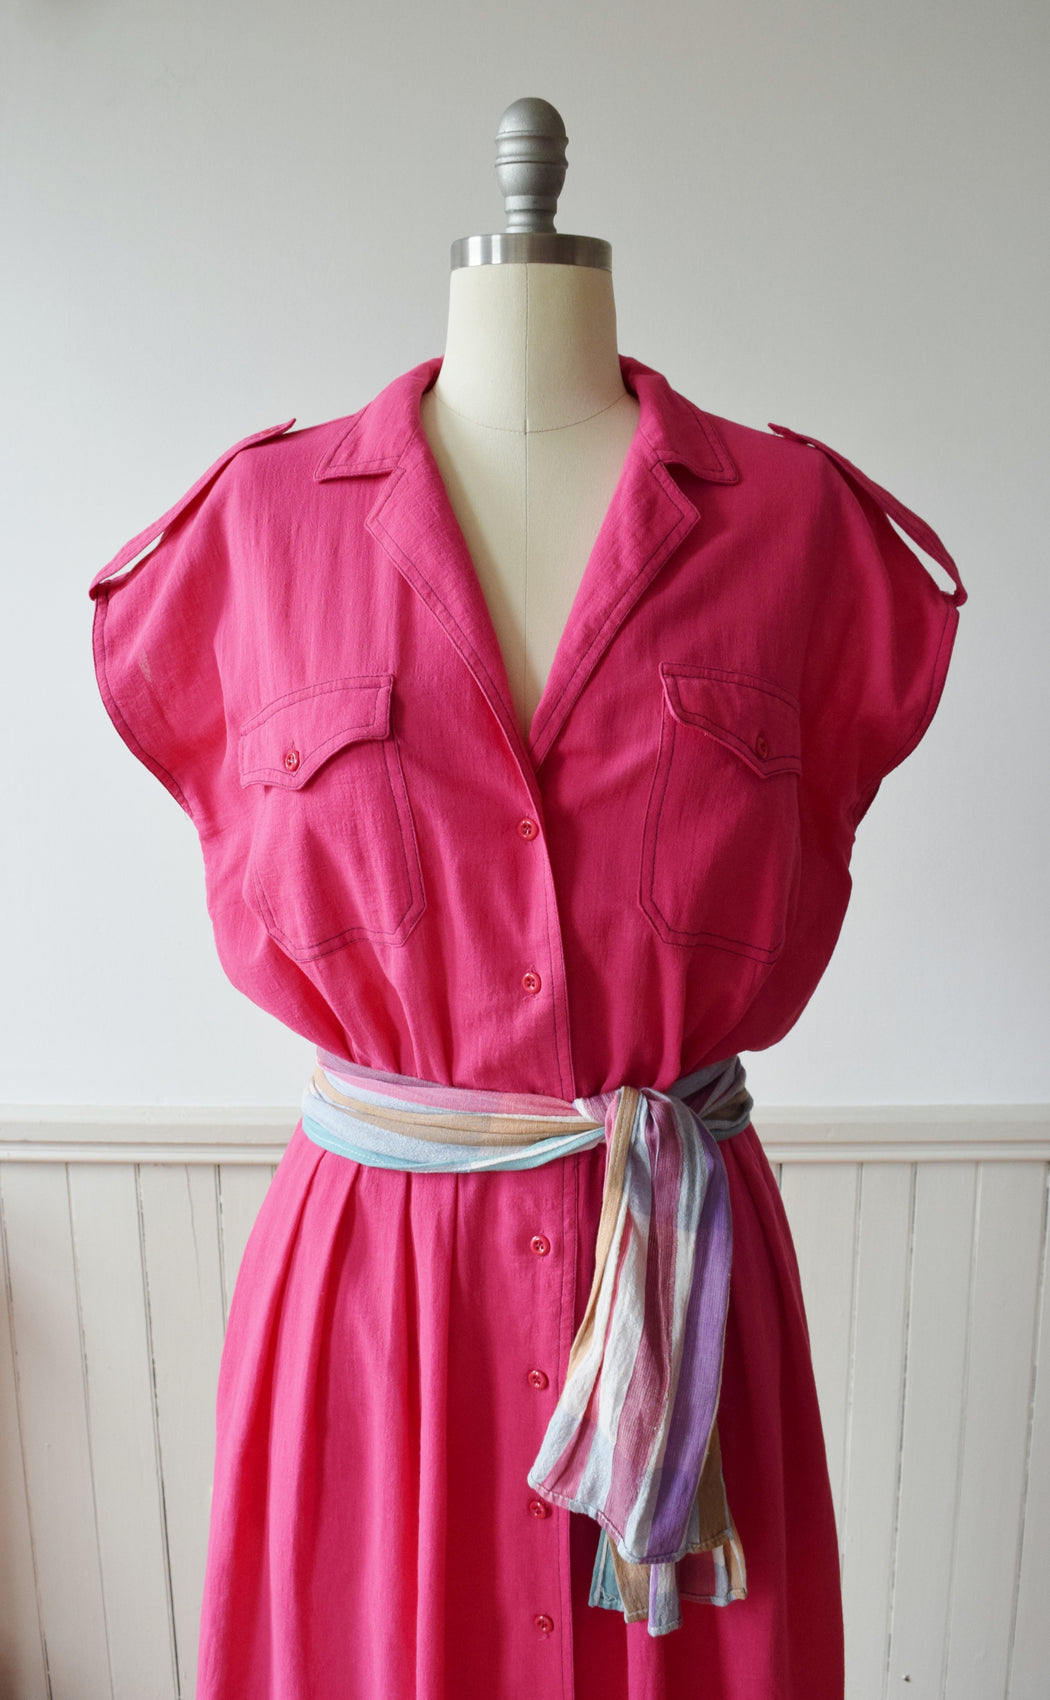 Vintage Watermelon Pink Dress by Jaeger | 1980s | M/L